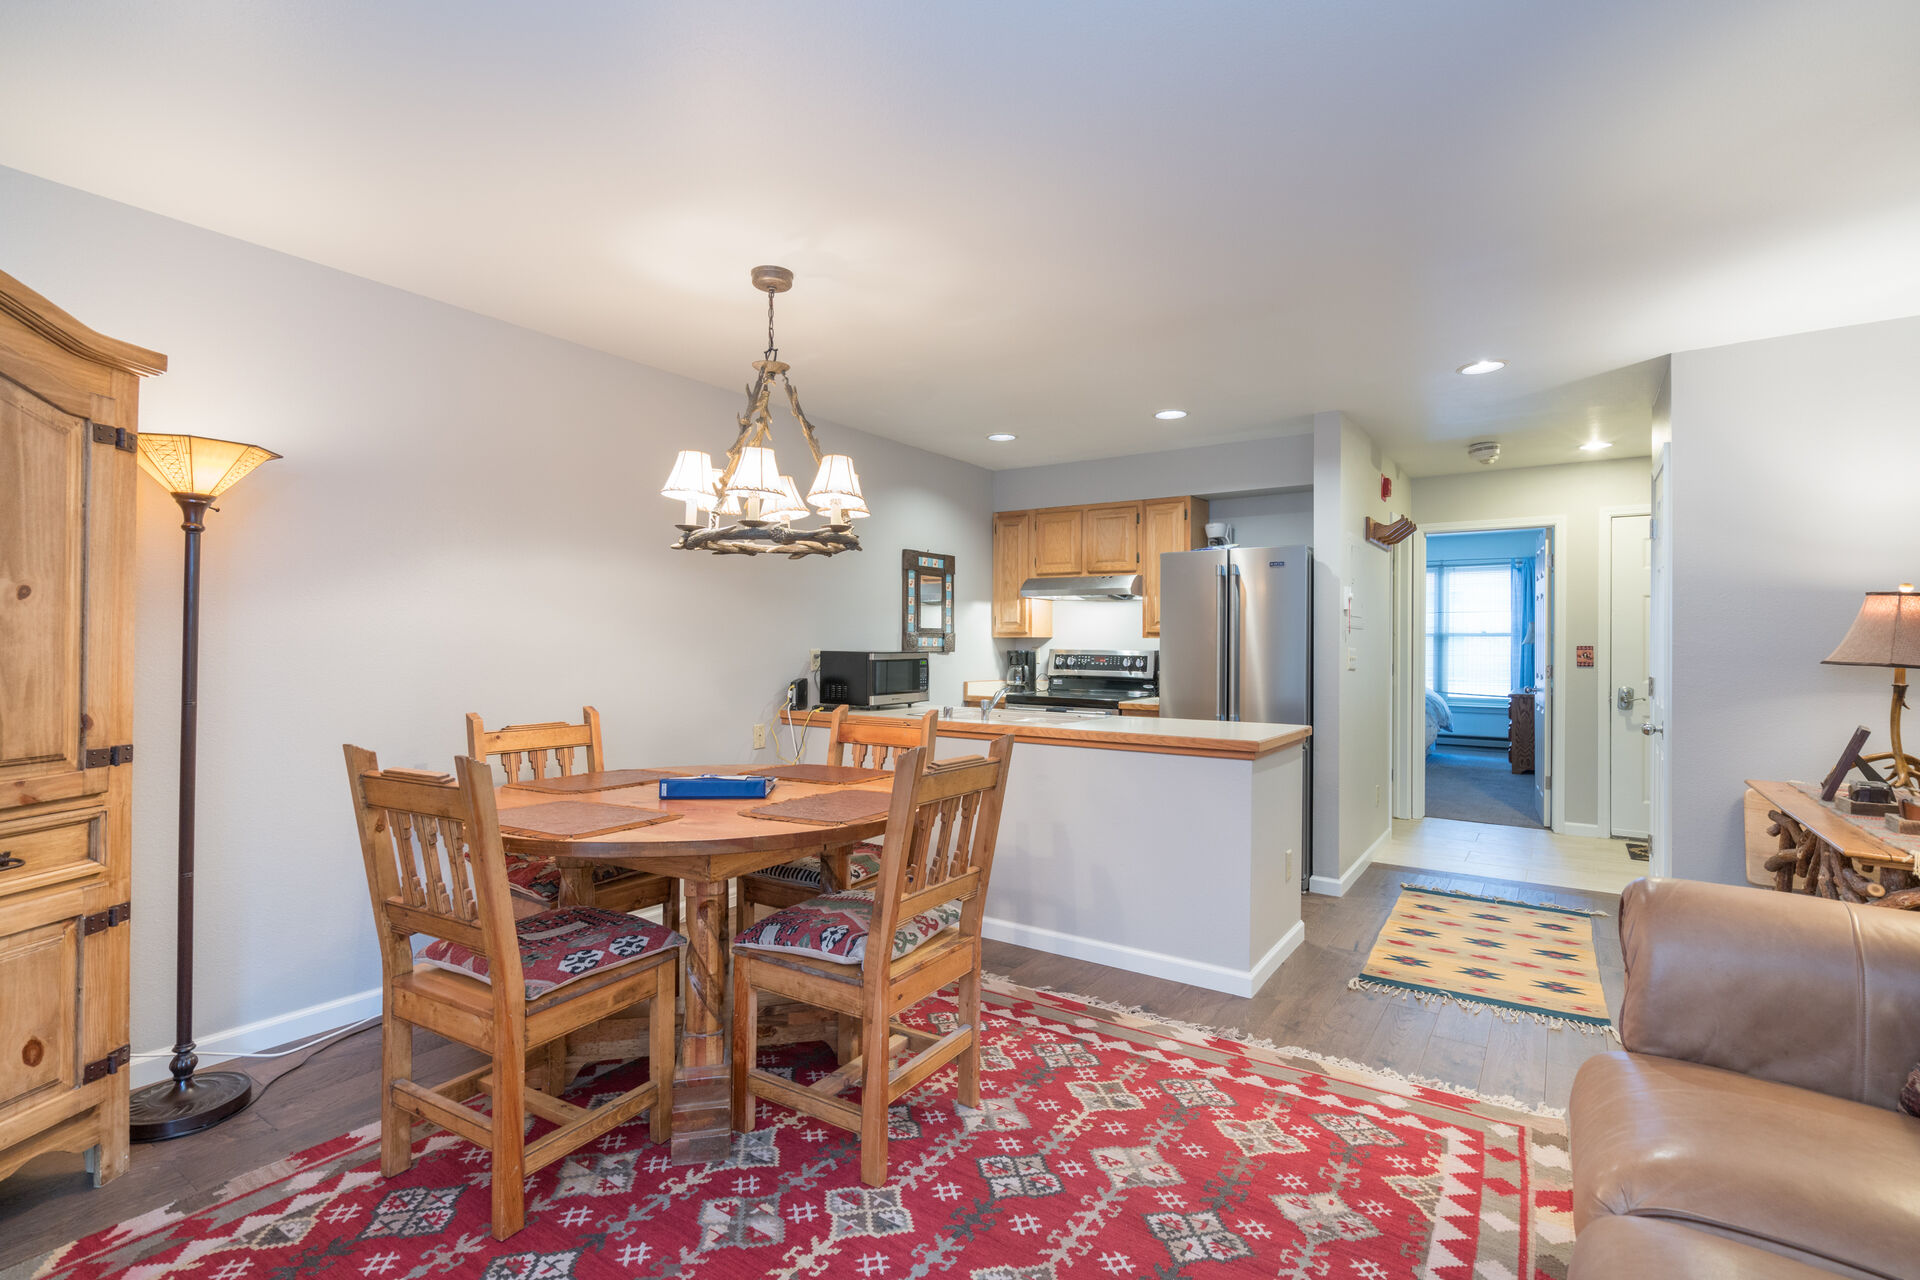 Dining Table, Chairs, Kitchen with Refrigerator, Microwave and Coffee Maker